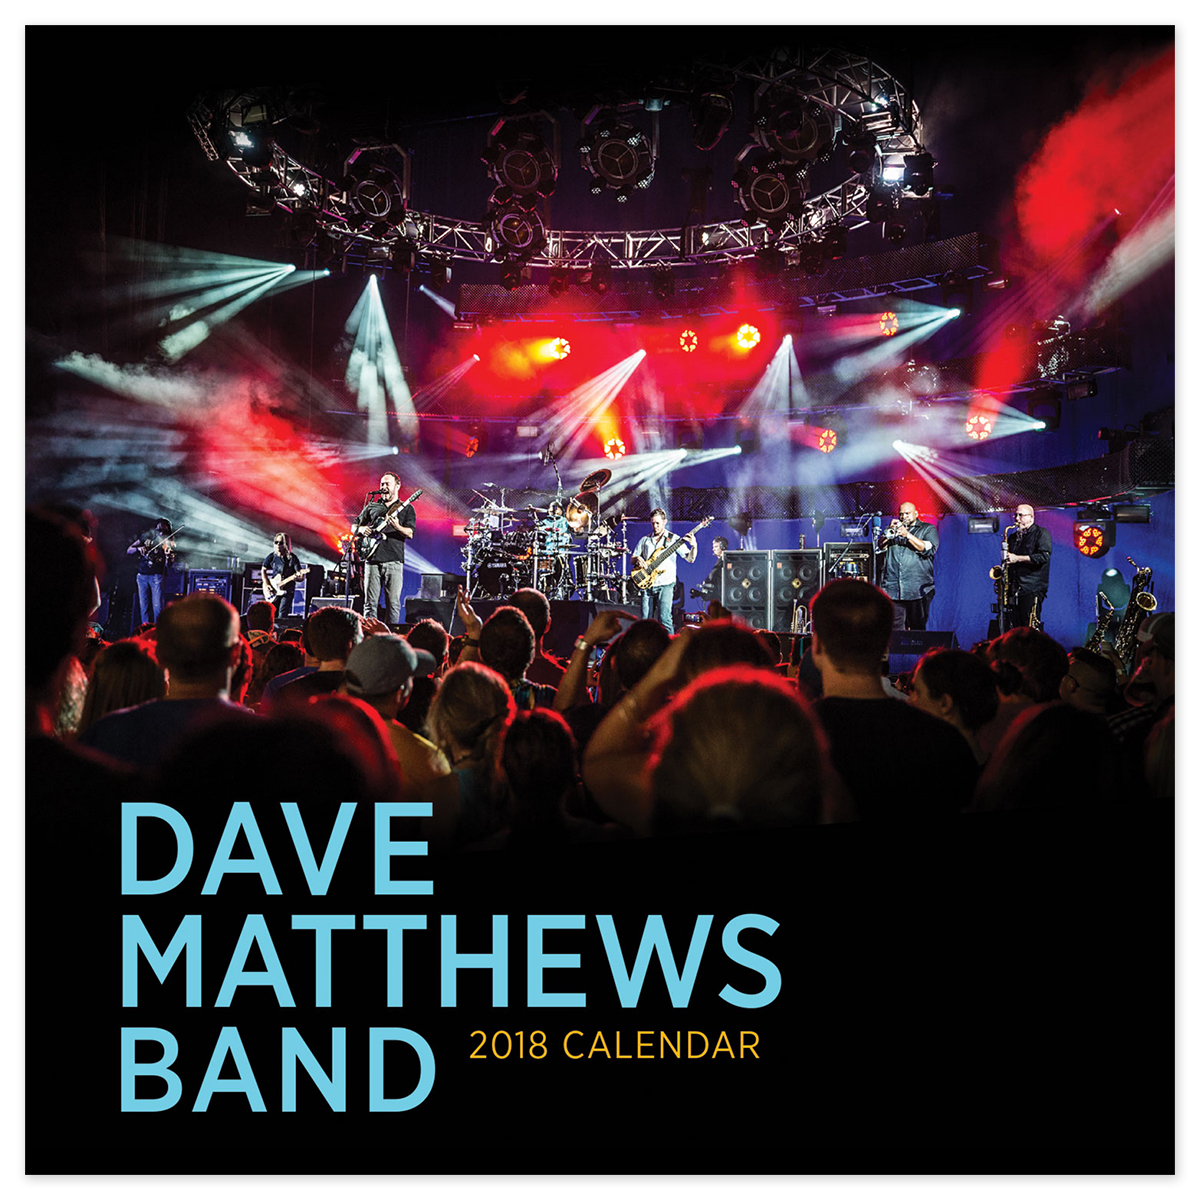 musical review dave matthews band Music, film, tv and political news coverage on their first album in six years, alt-rock jam titans dave matthews band produce mostly mature singer-songwriter fare review: dave matthews band's.